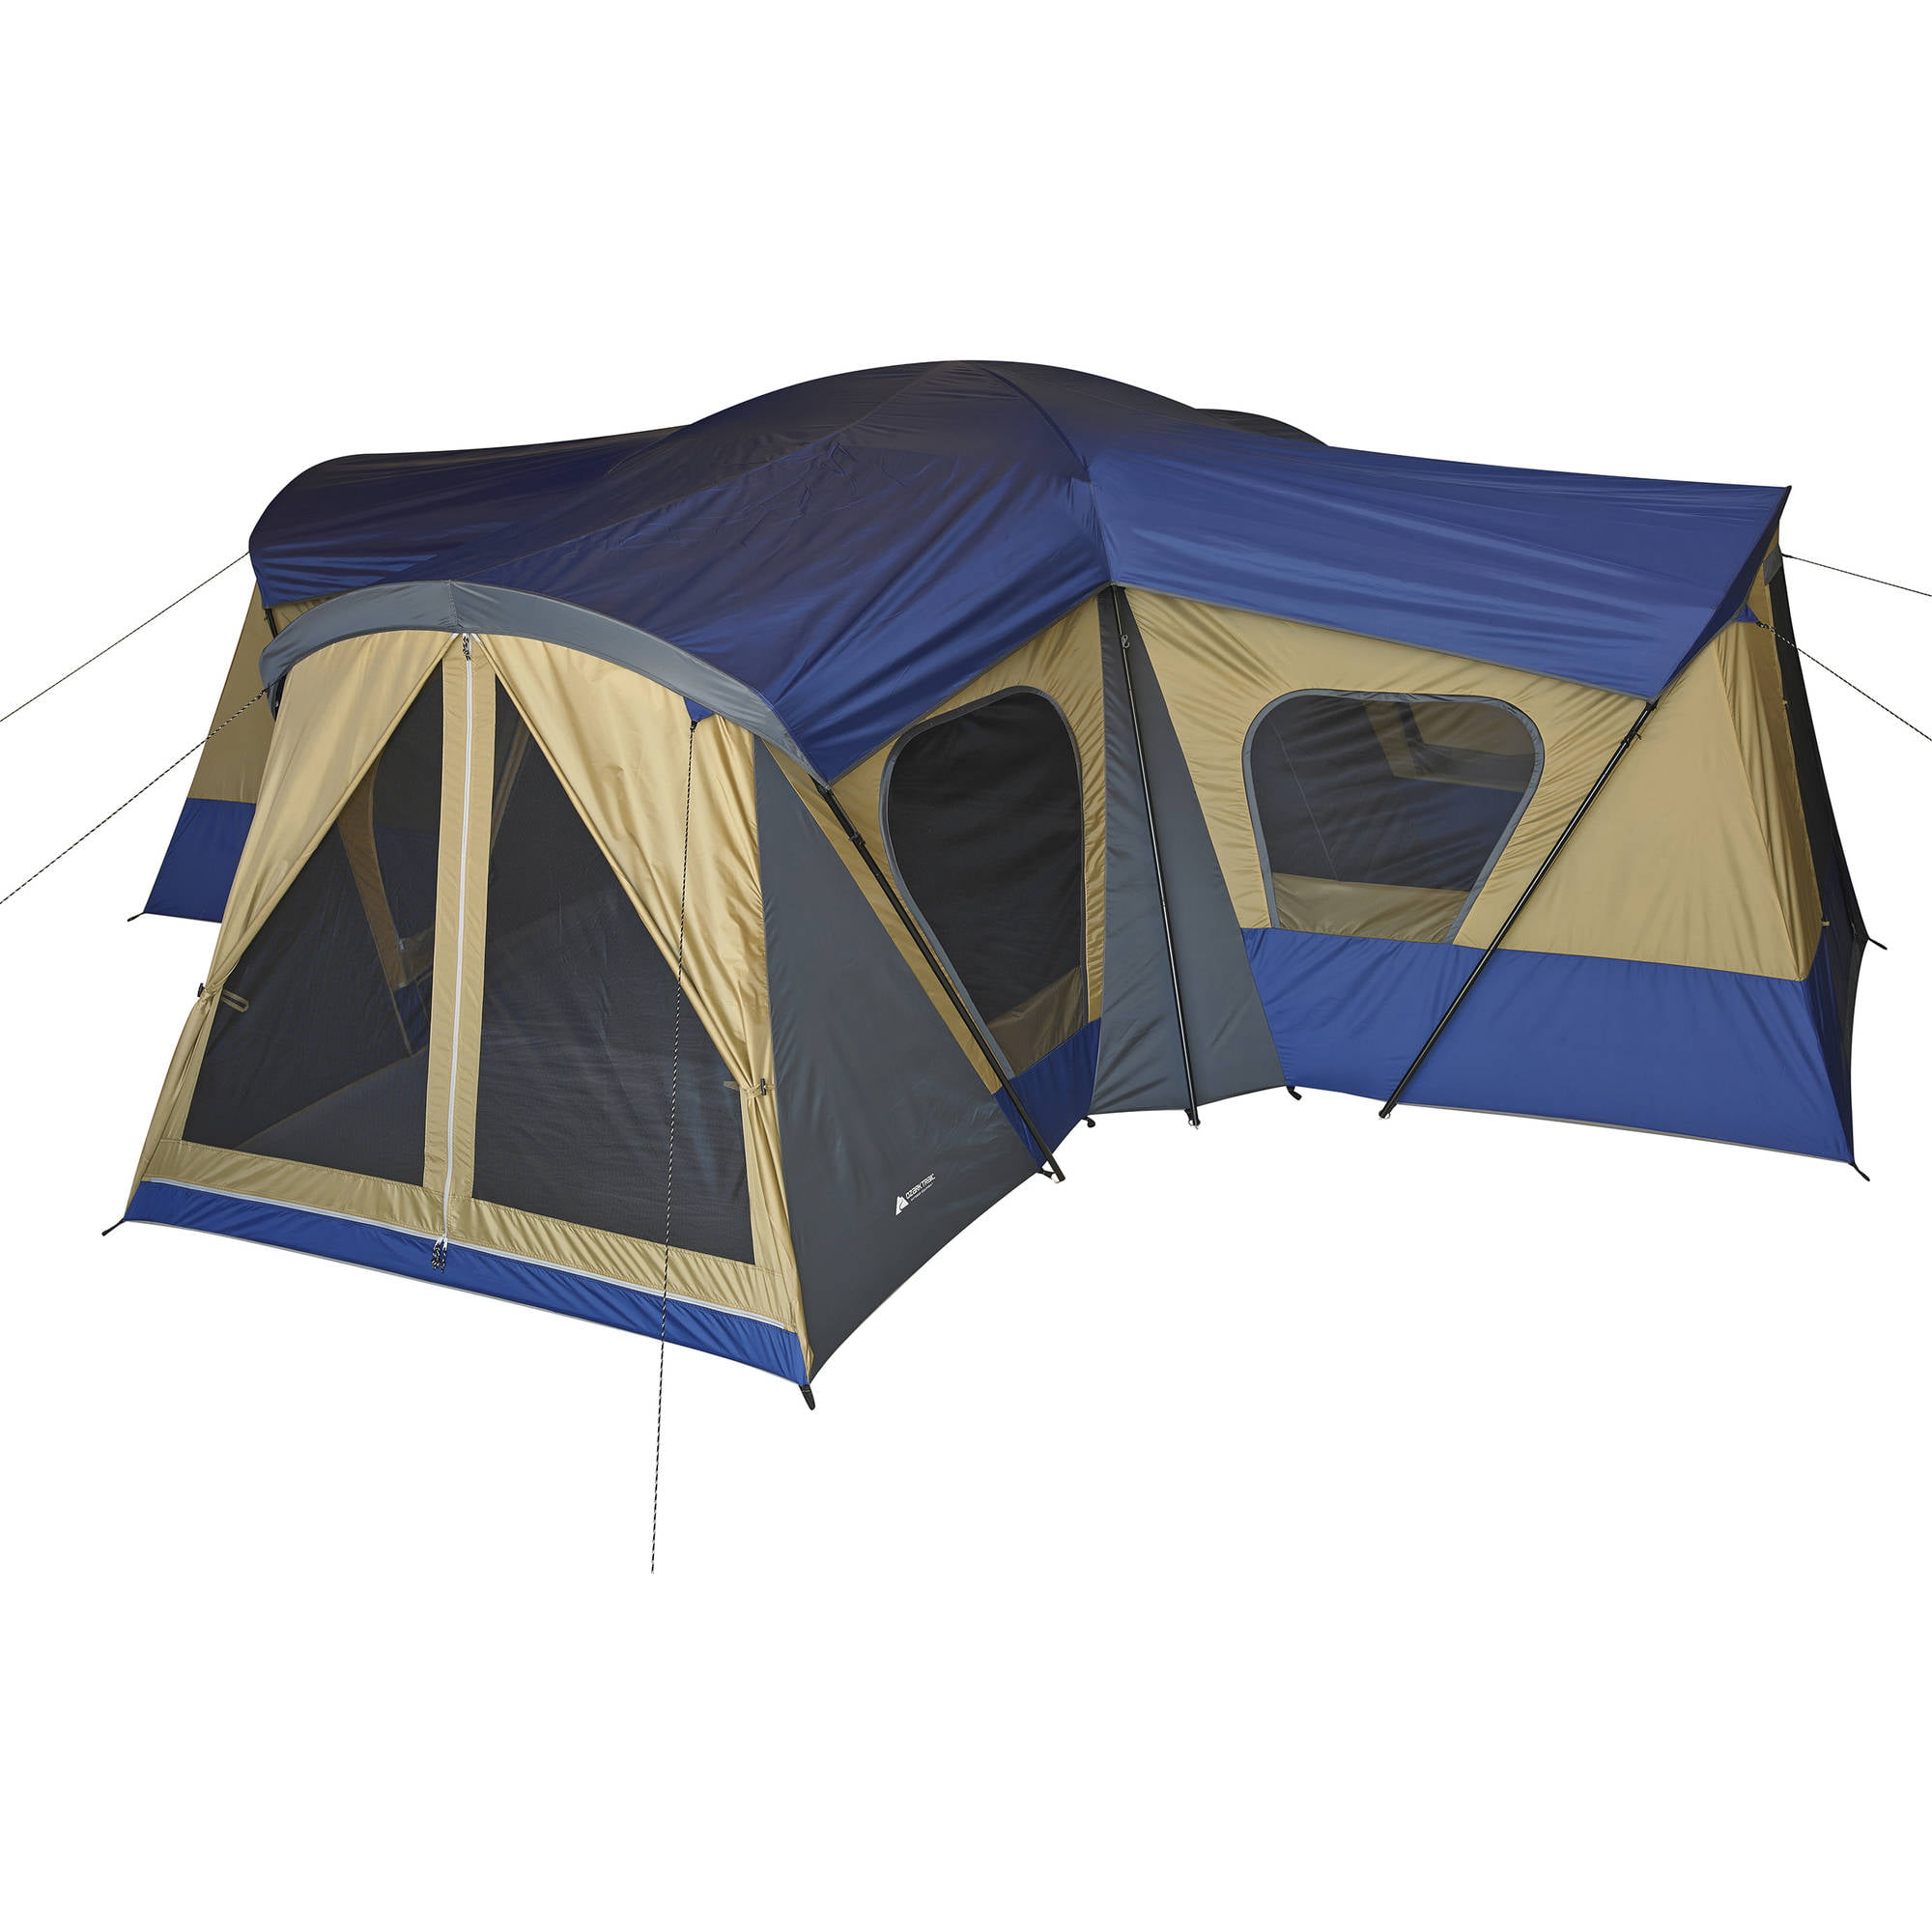 Ozark Trail 14-Person 4-Room Base Camp Tent by Campex (BD) Limited